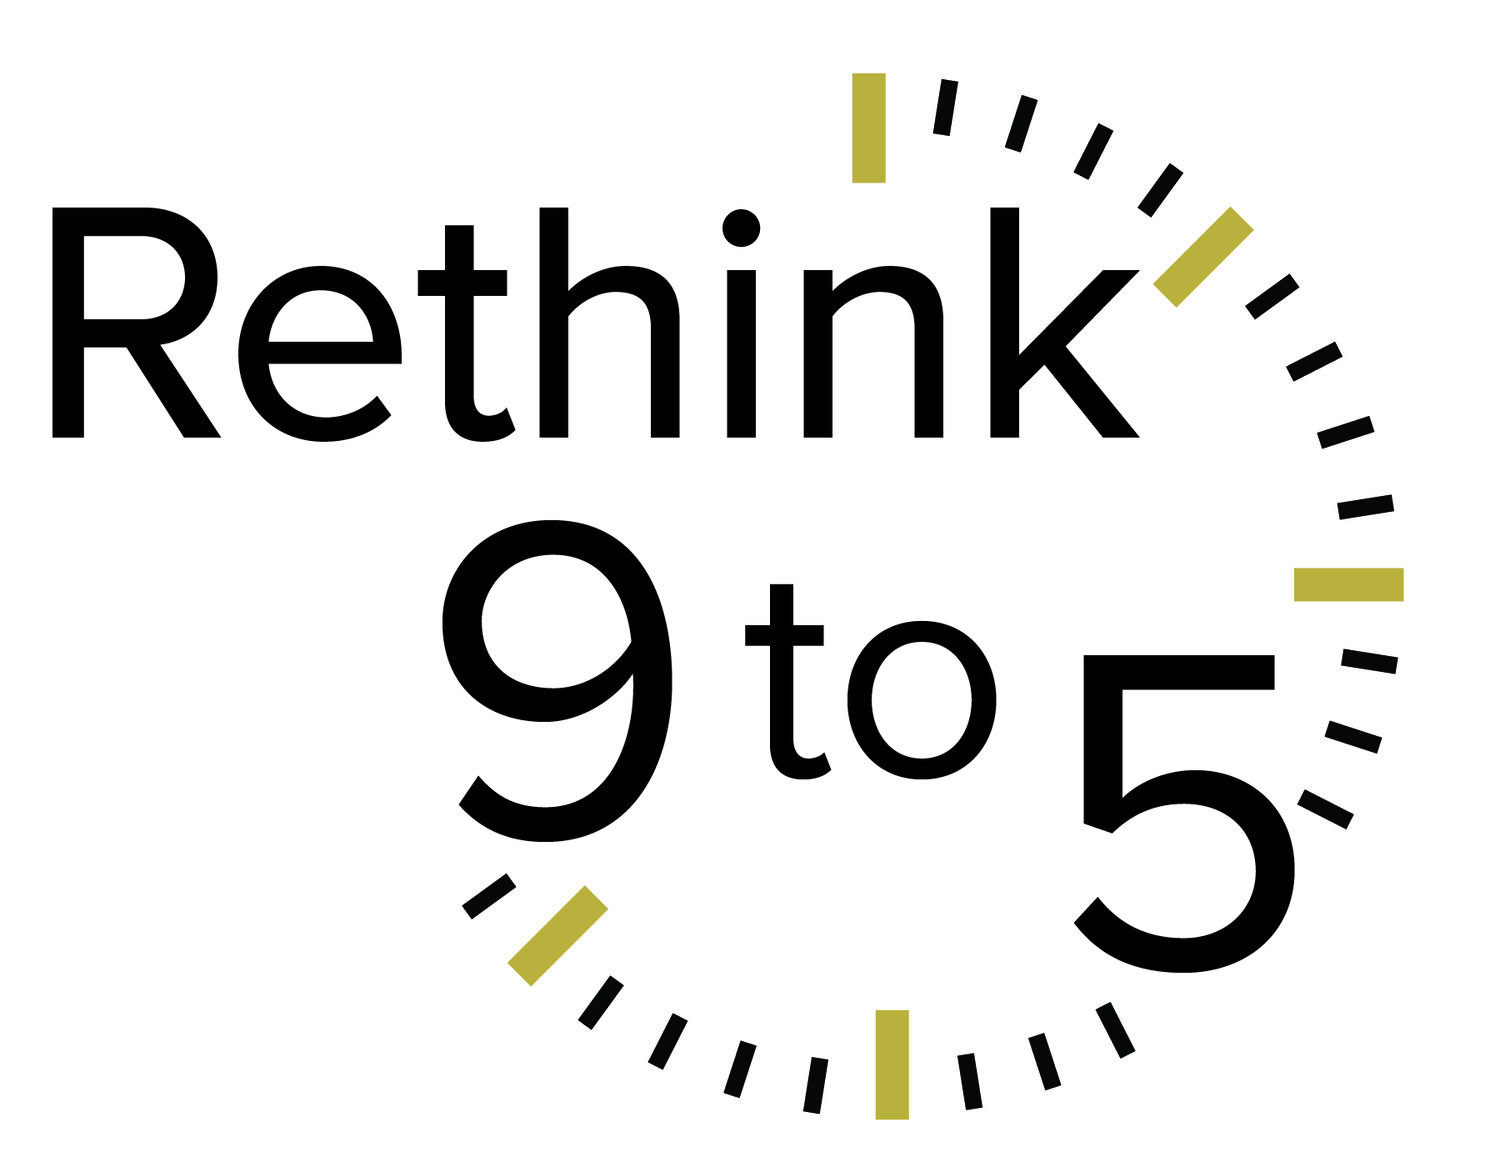 Rethink Nine to Five